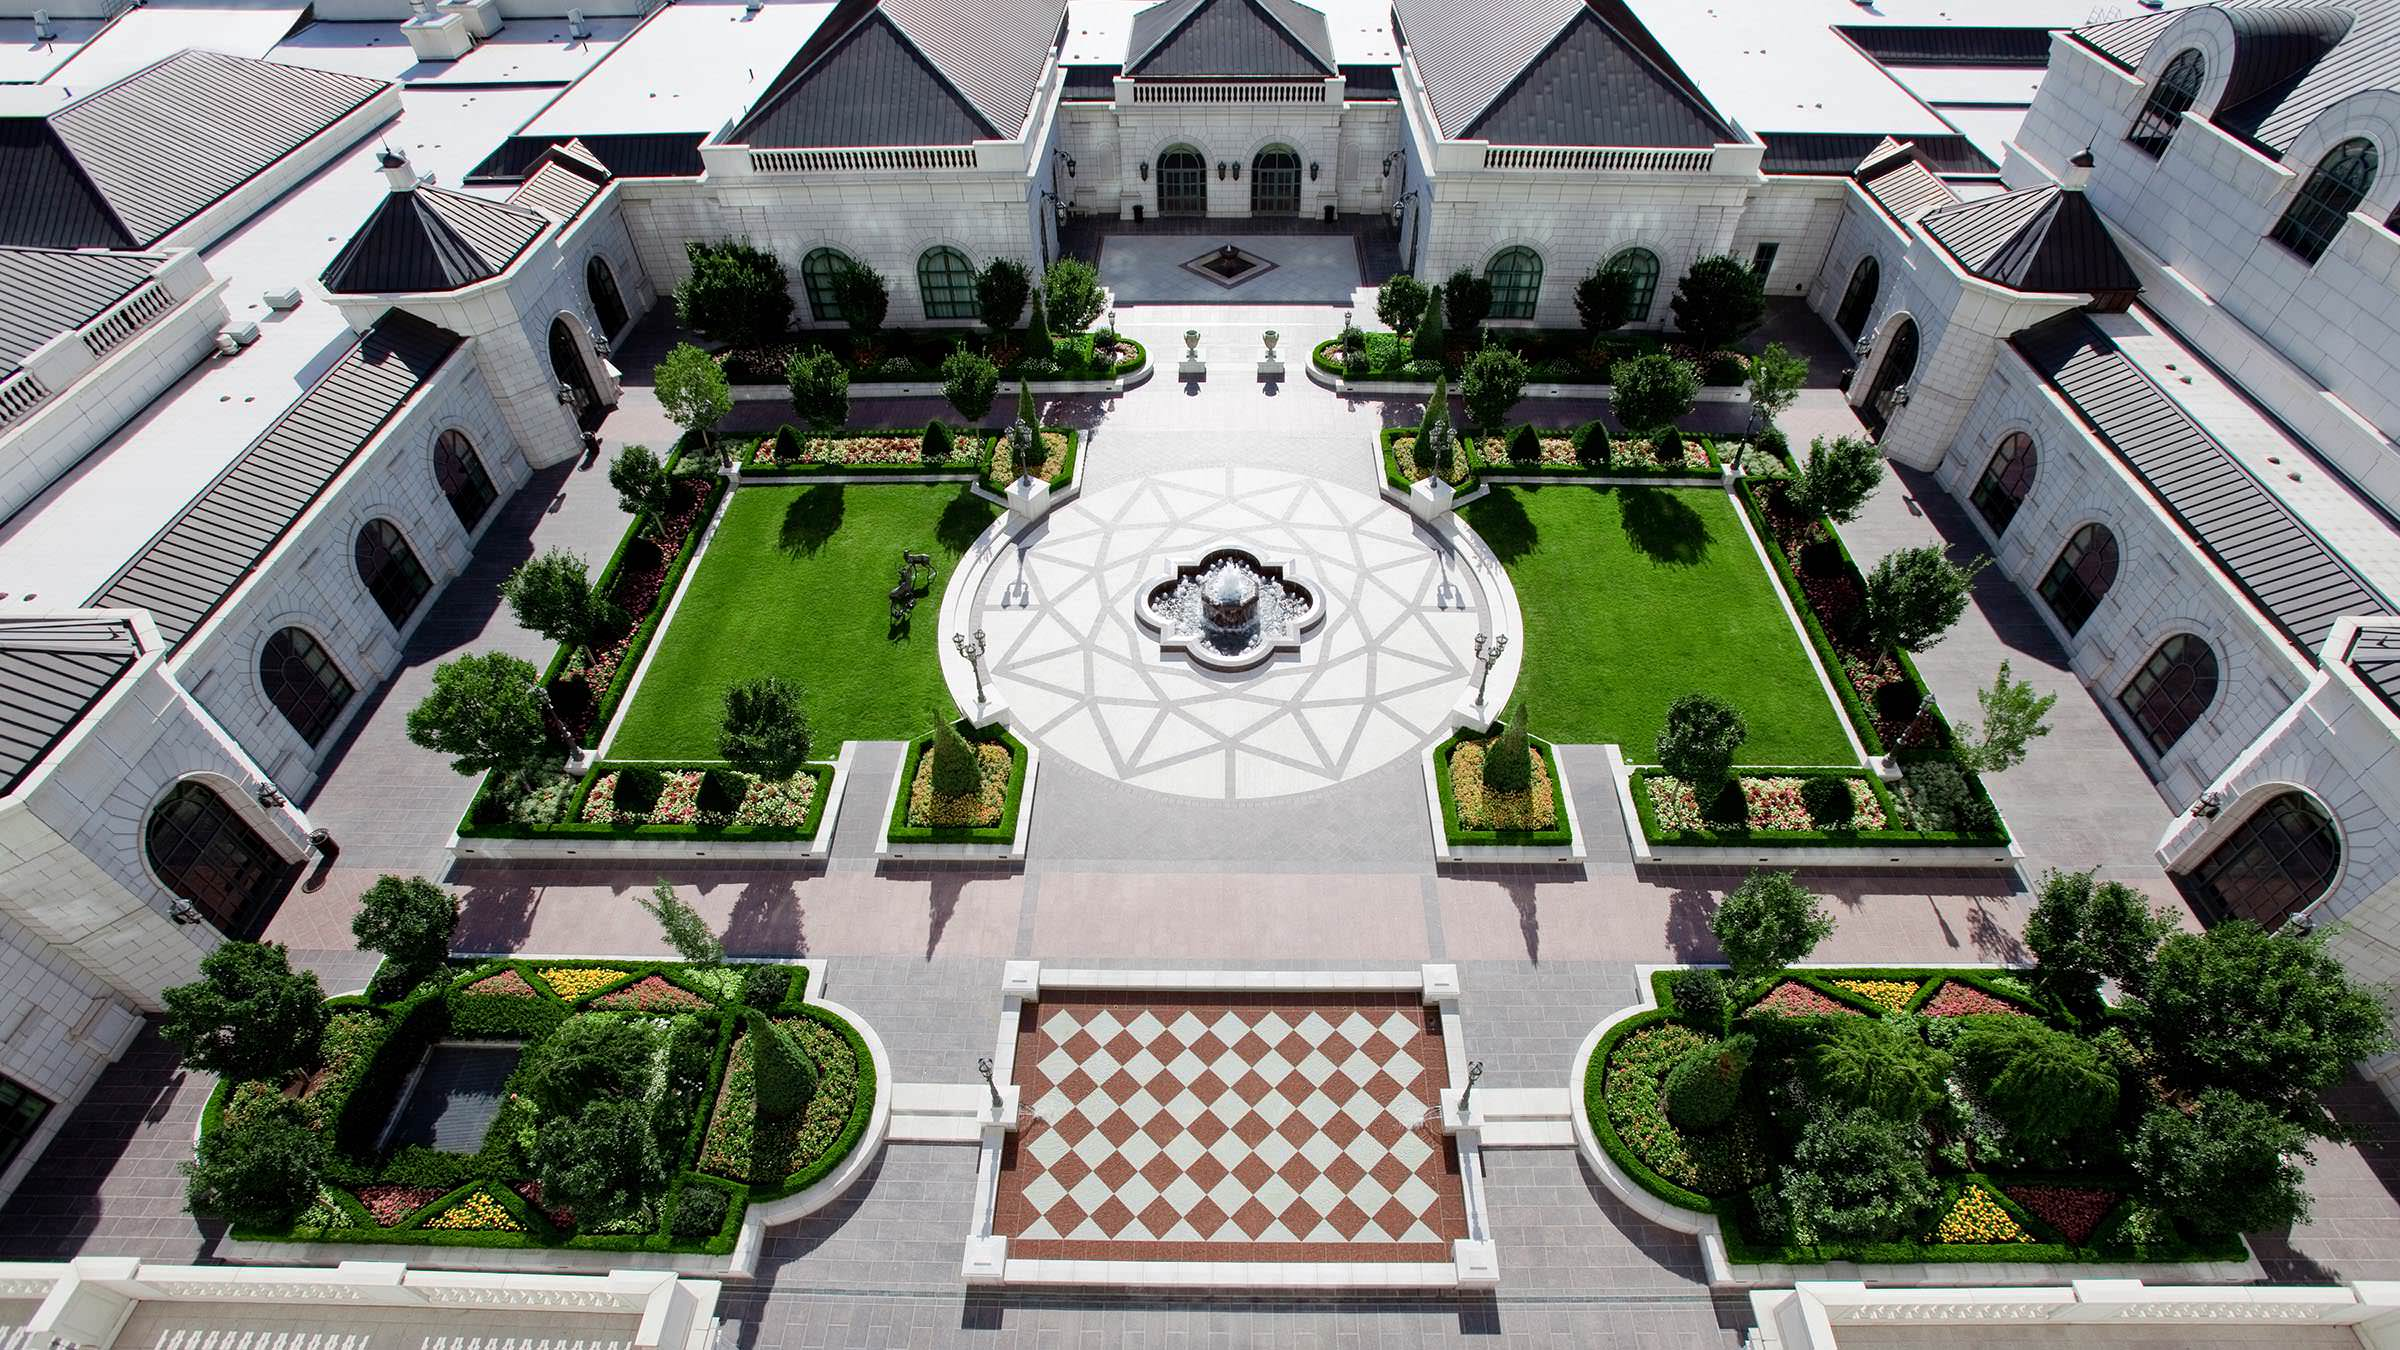 Grand America Hotel's Center Courtyard with green manicured lawns and fountain.